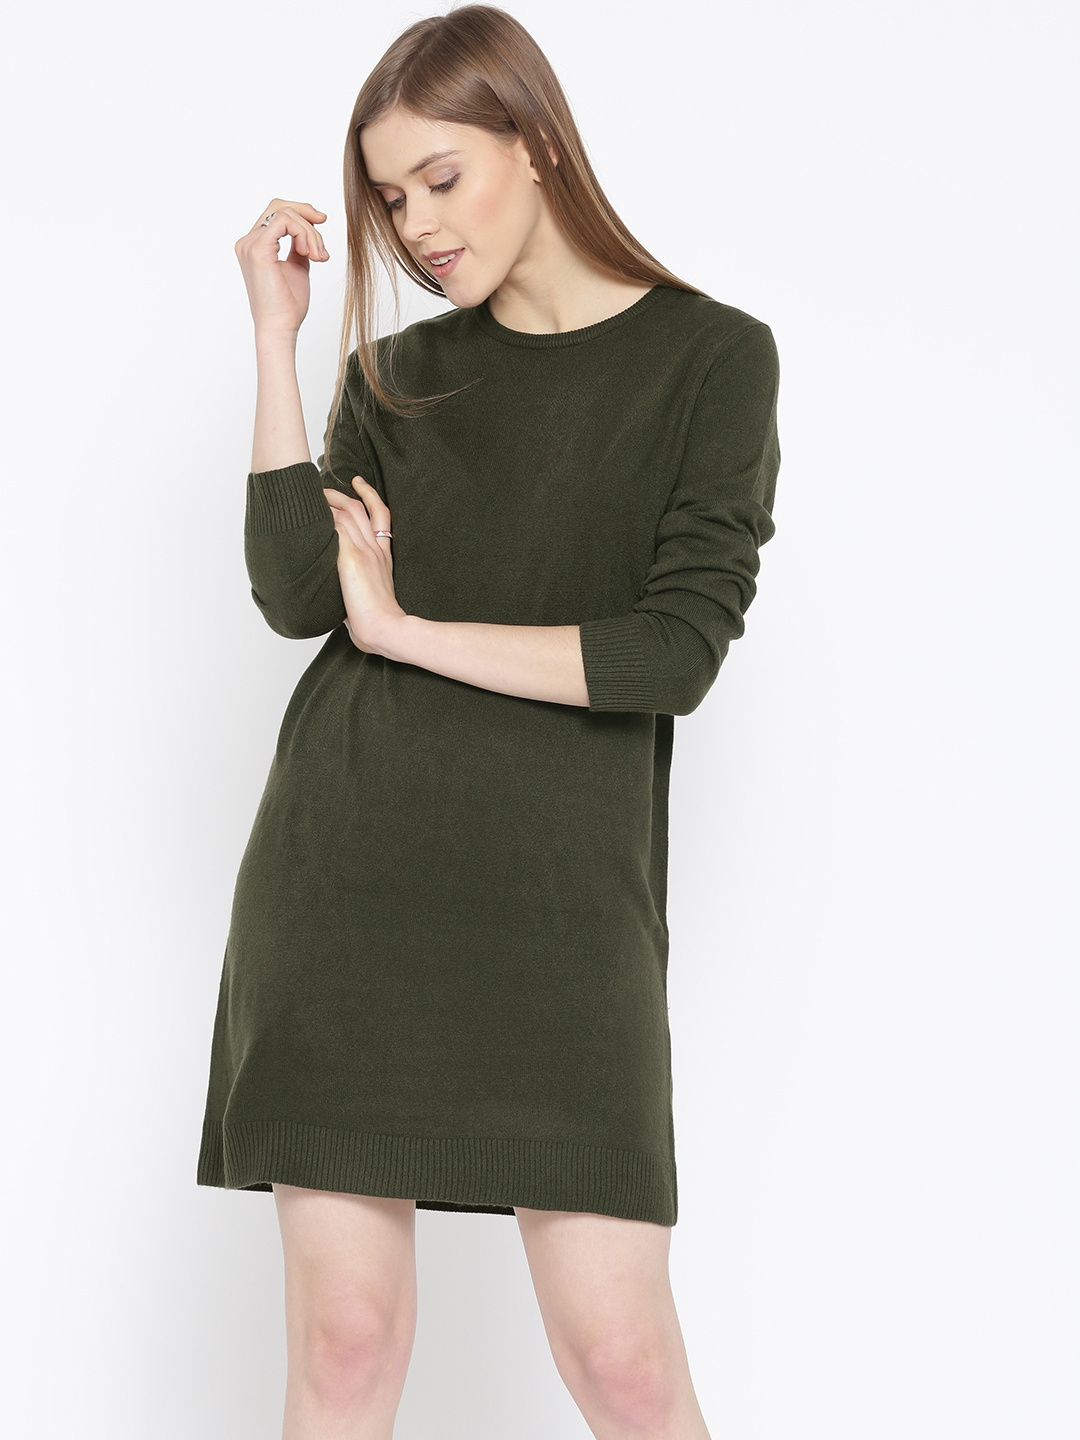 bedb342e649 Buy FOREVER 21 Women Olive Green Solid Sweater Dress - Dresses for ...